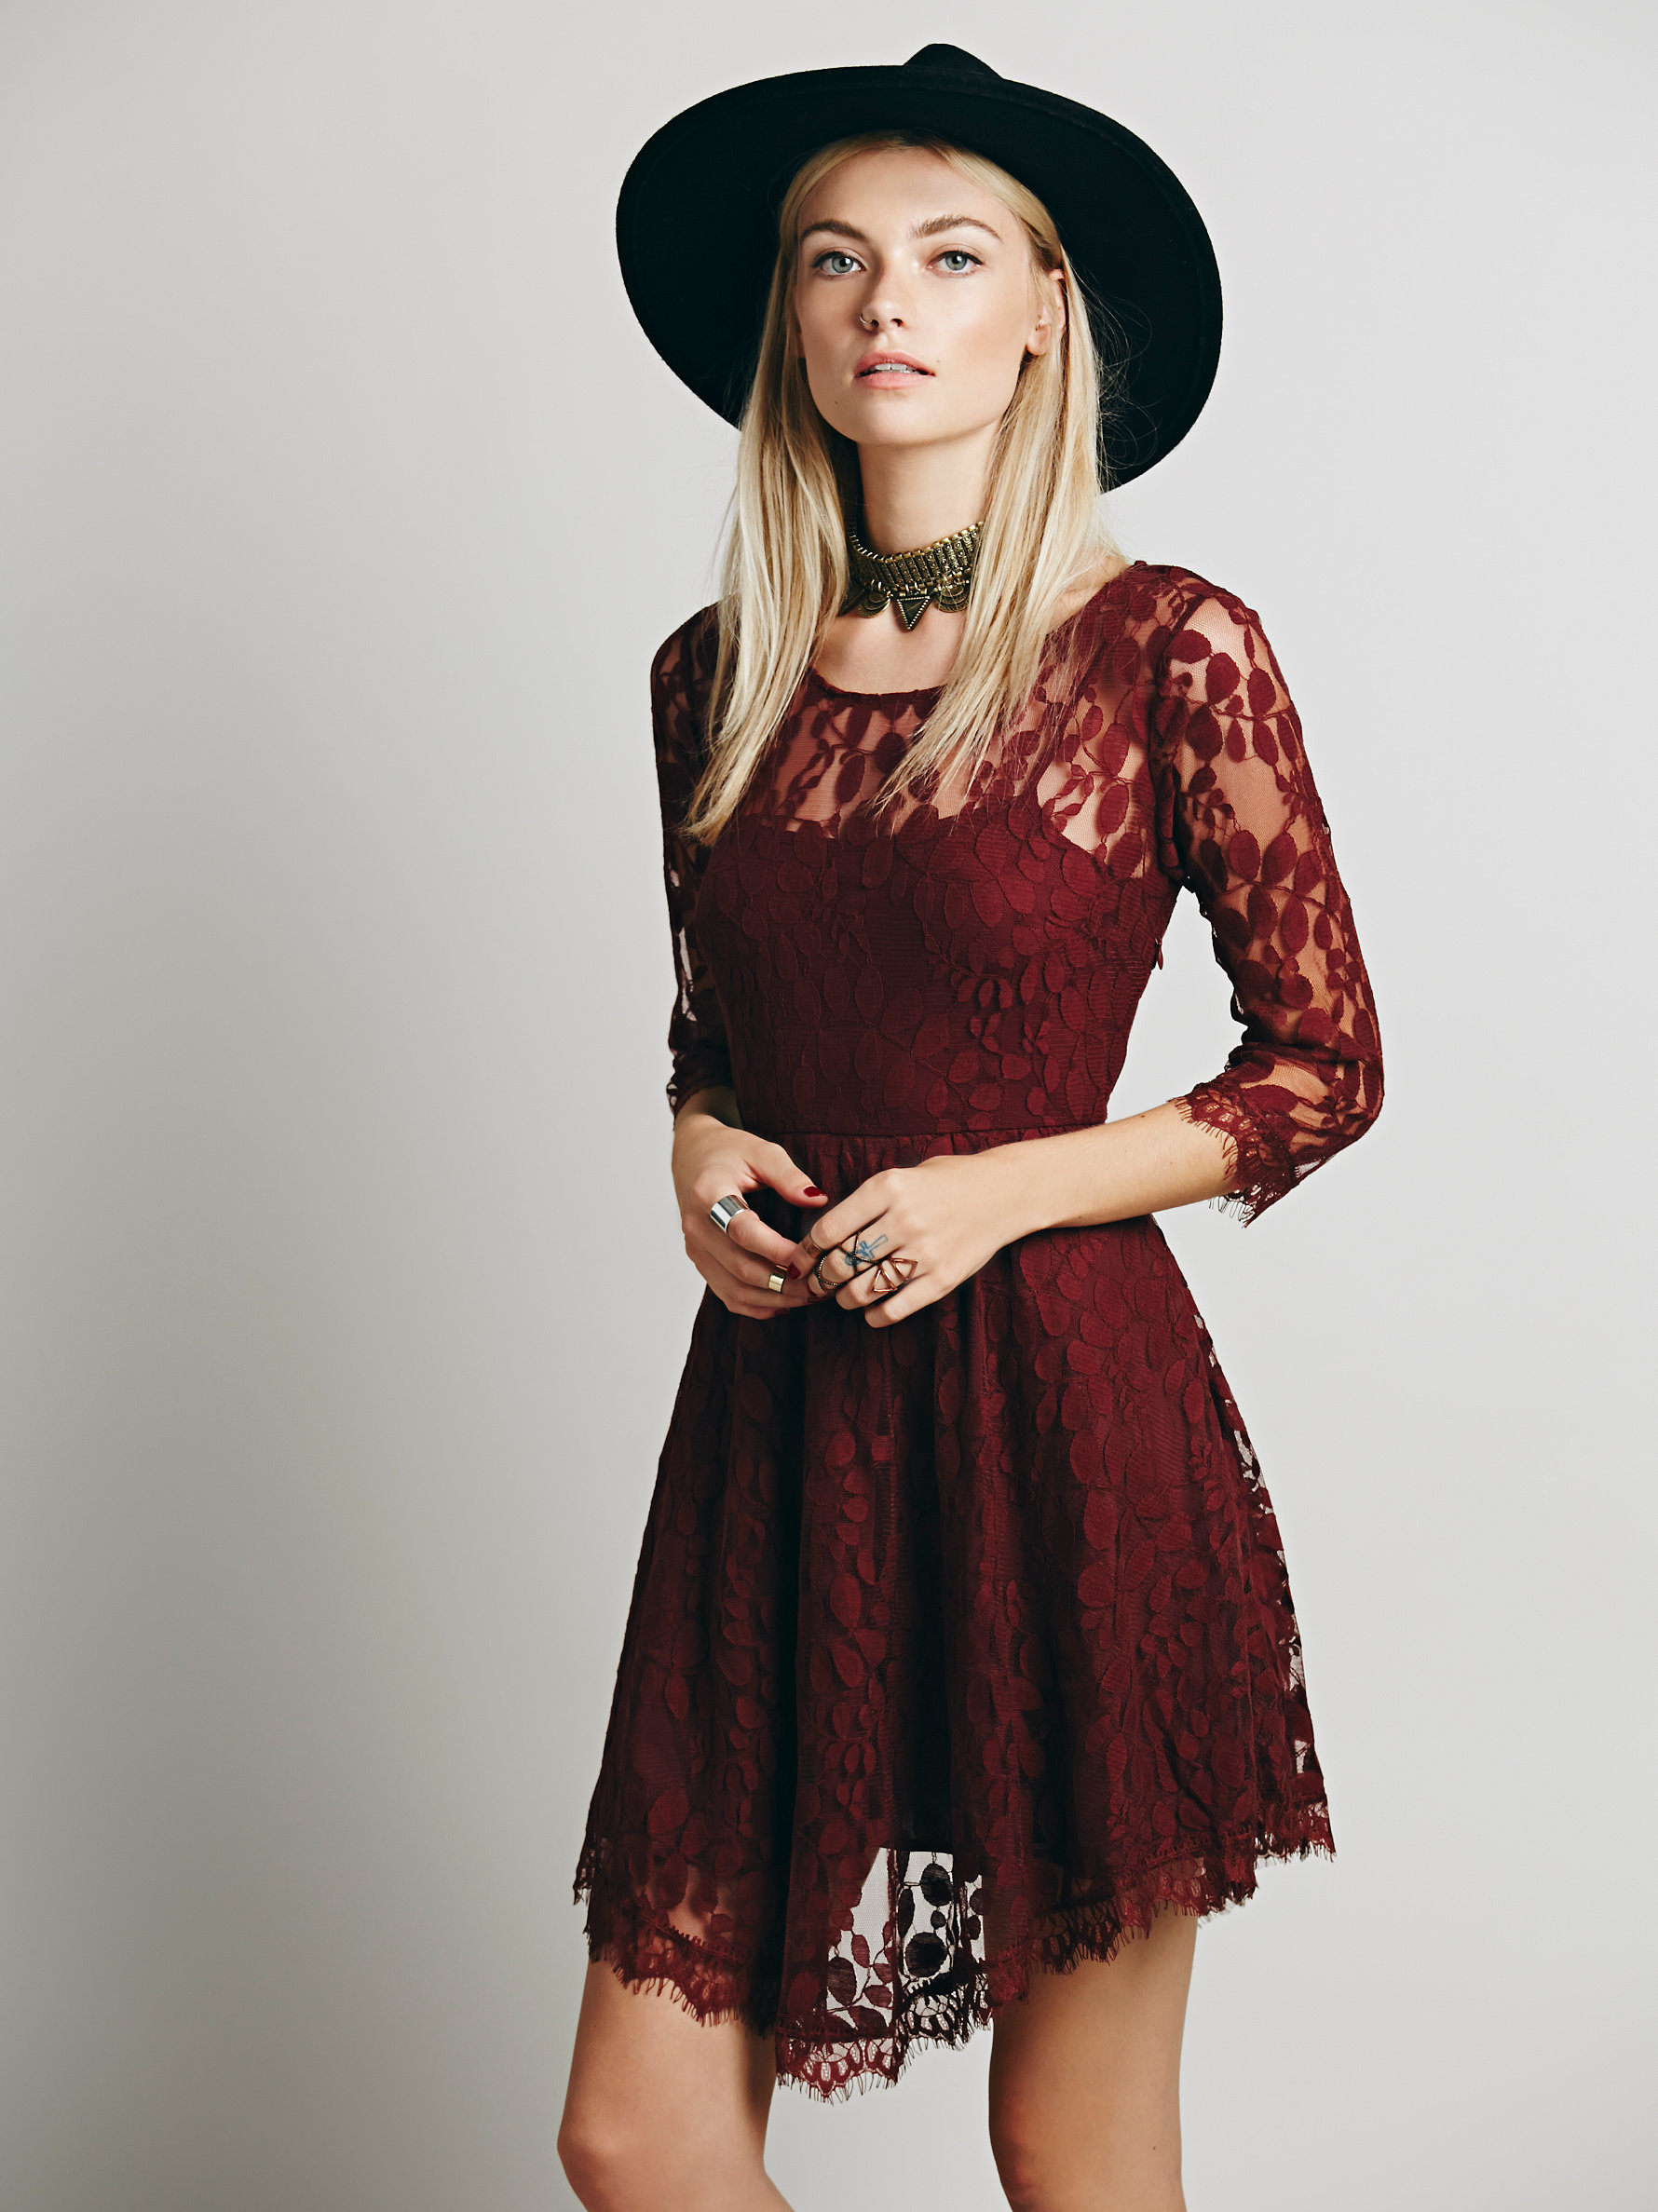 Free People Floral Mesh Lace Dress in Scarlet | How to Wear Dresses in Fall